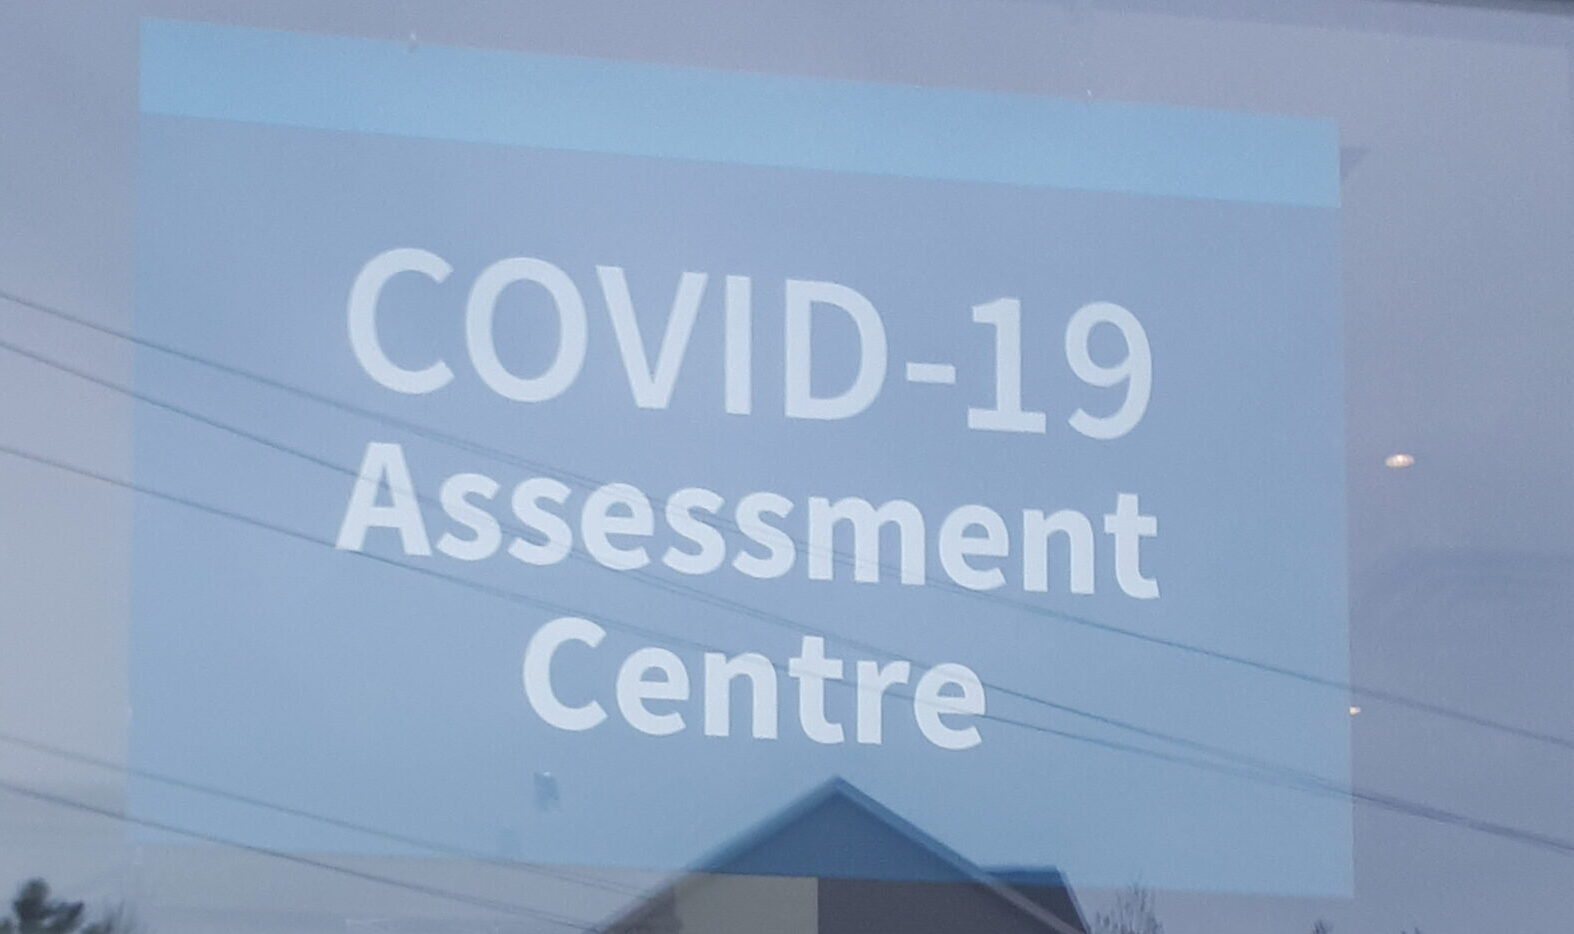 Sign for COVID-19 testing centre